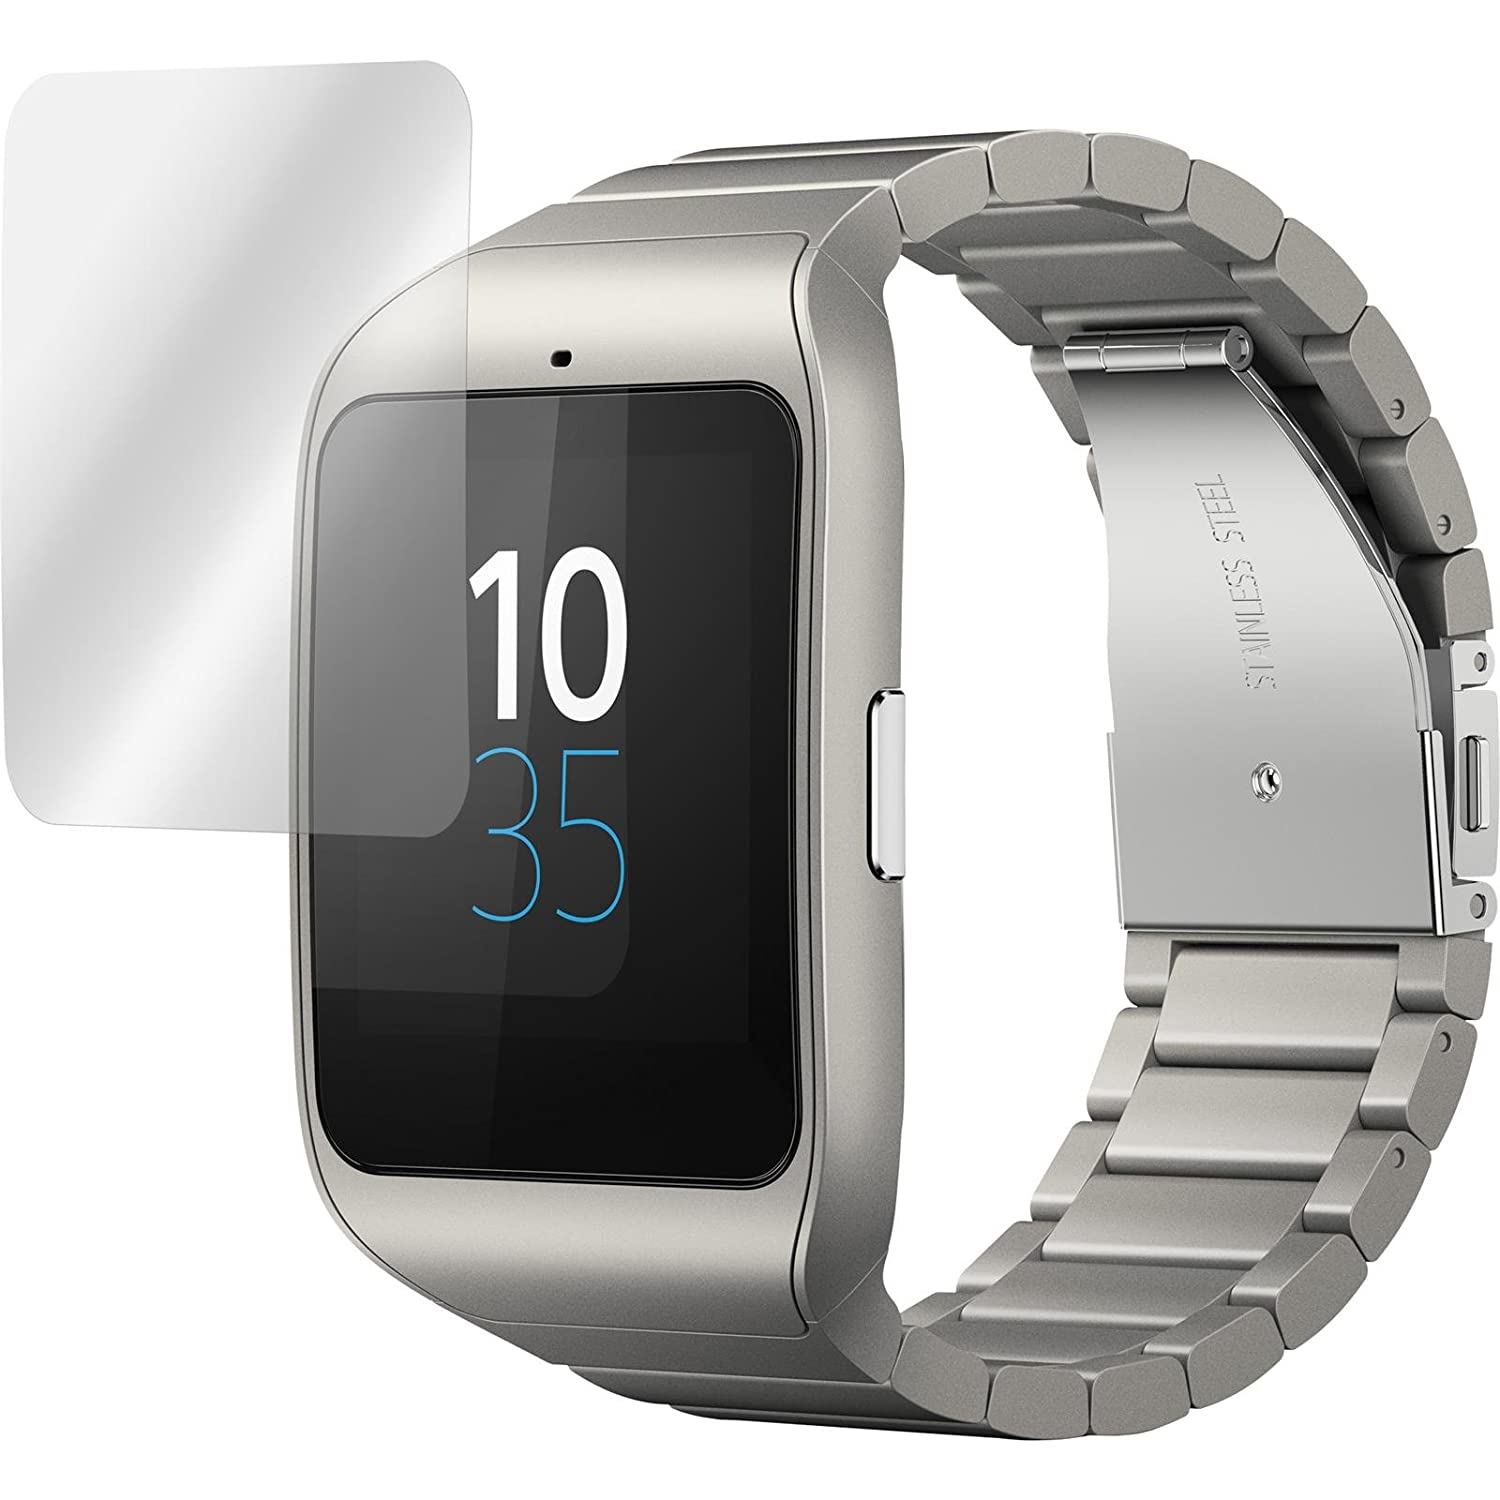 PhoneNatic 8 x Film de Protectionclair Compatible avec Sony SmartWatch 3 SWR50 Protecteurs Écran: Amazon.fr: High-tech